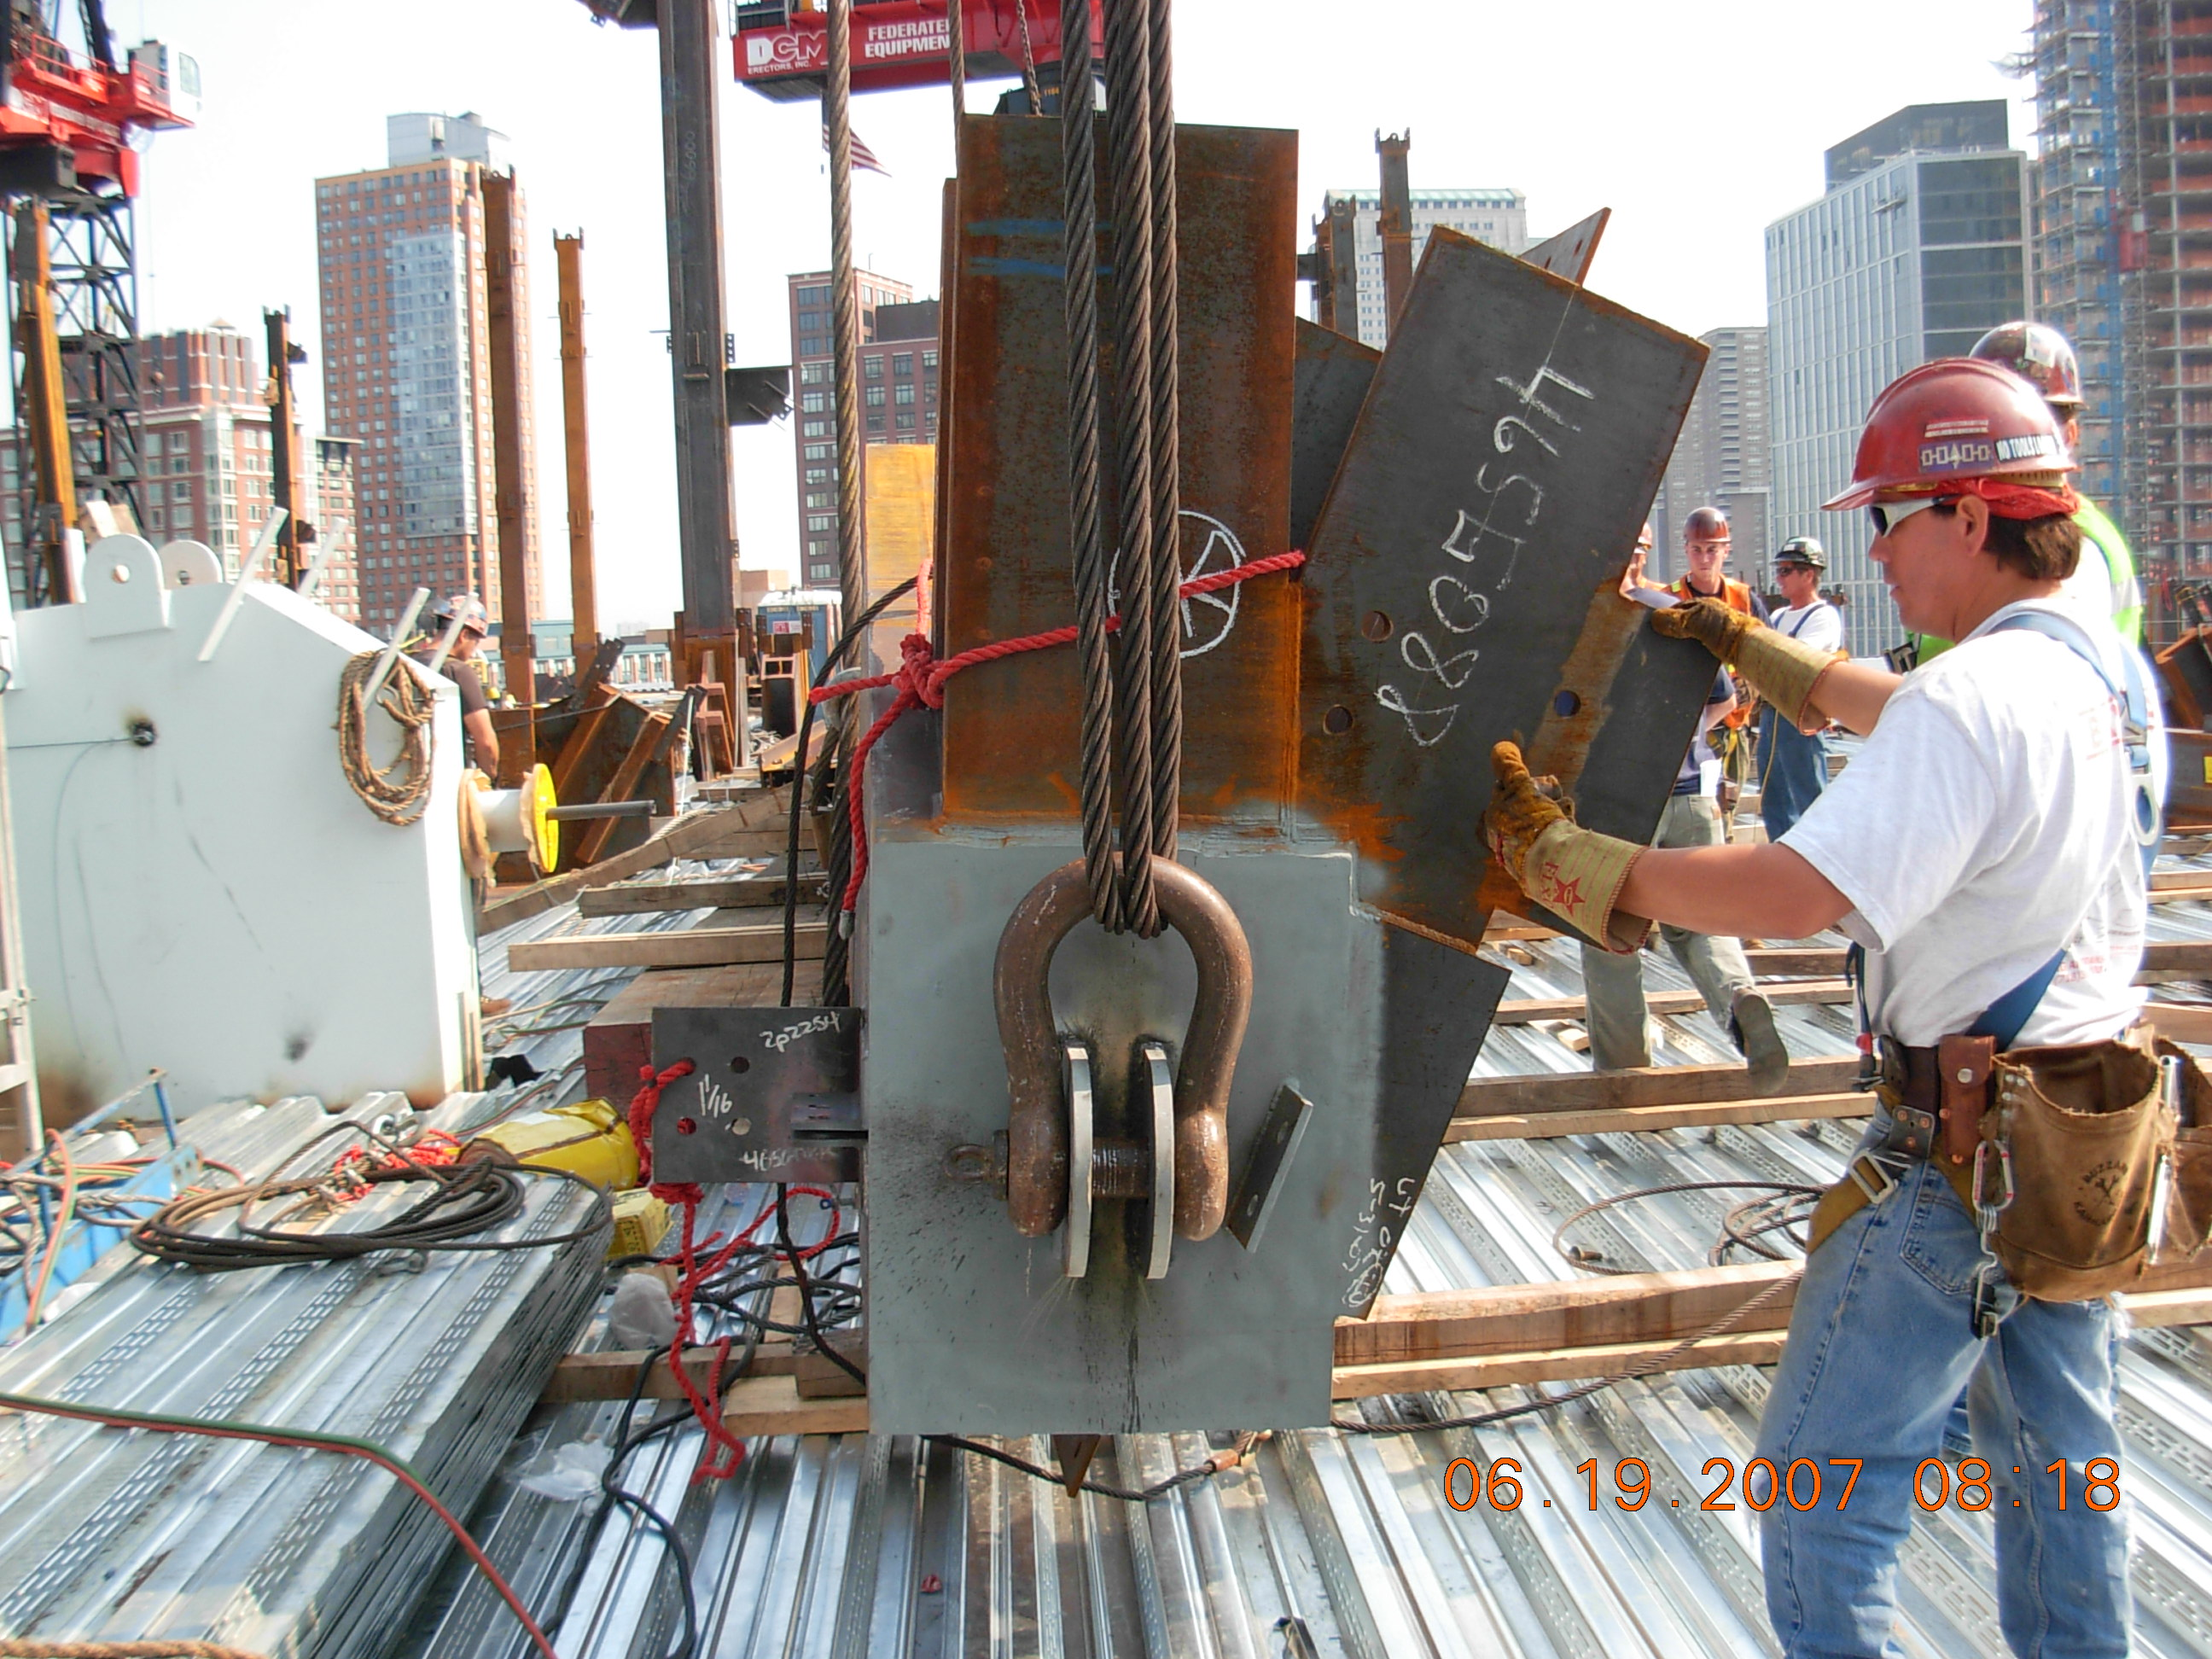 Ironworkers on the Job – NYC IRON WORKERS